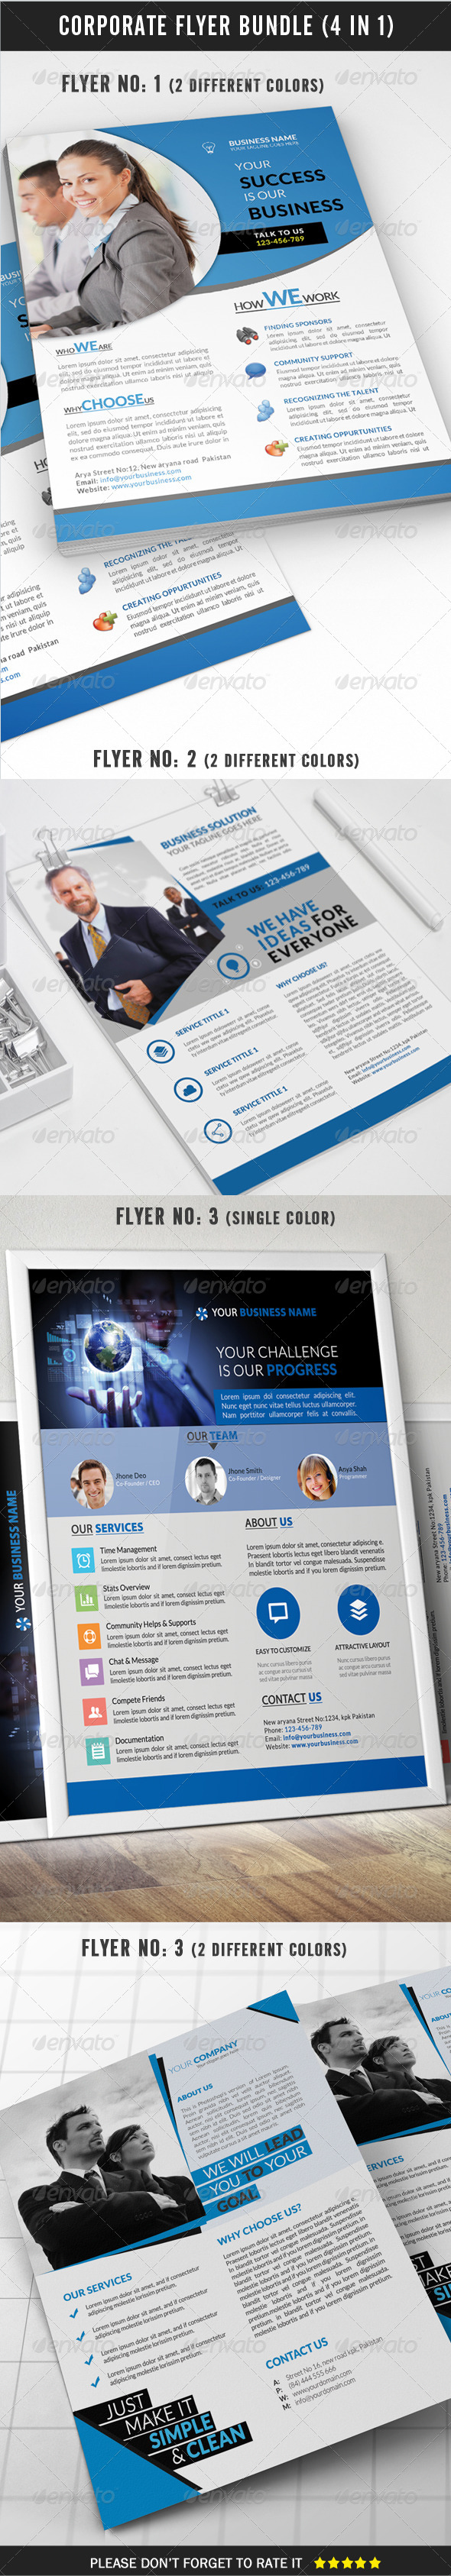 GraphicRiver Corporate Flyer Bundle 4 in 1 8336821